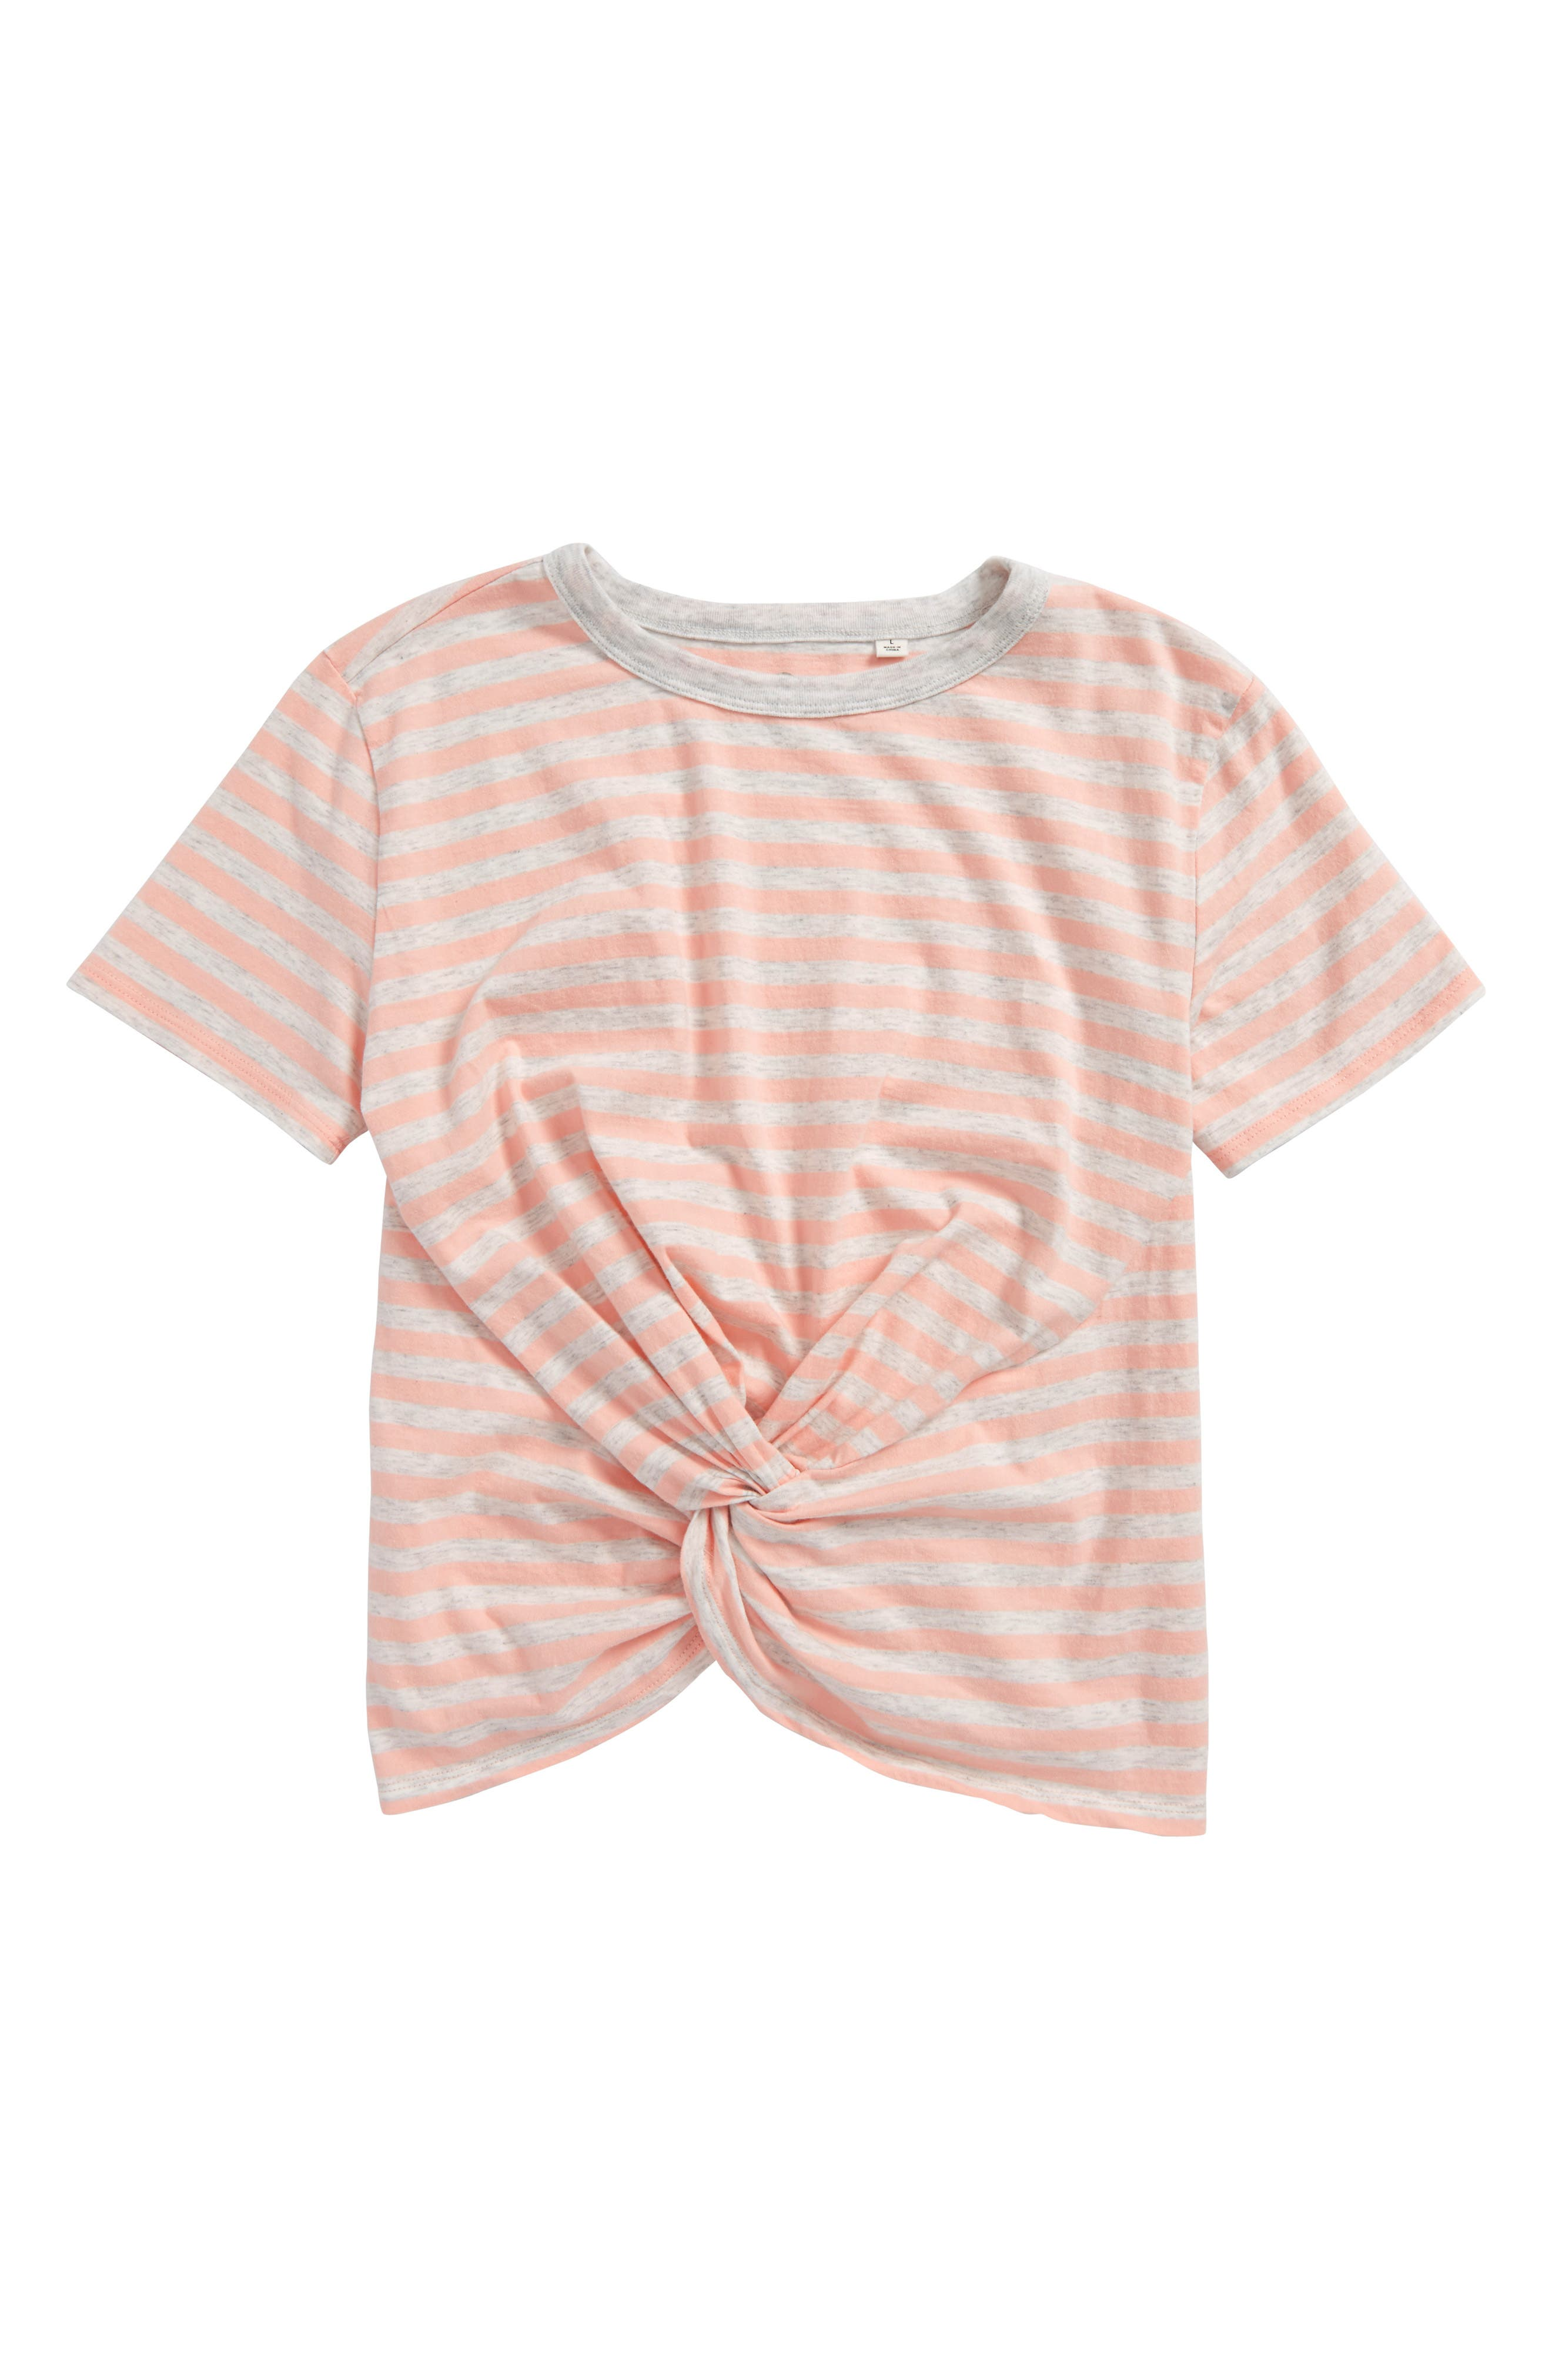 Main Image - ag adriano goldschmied kids Knot Front Stripe Tee (Big Girls)